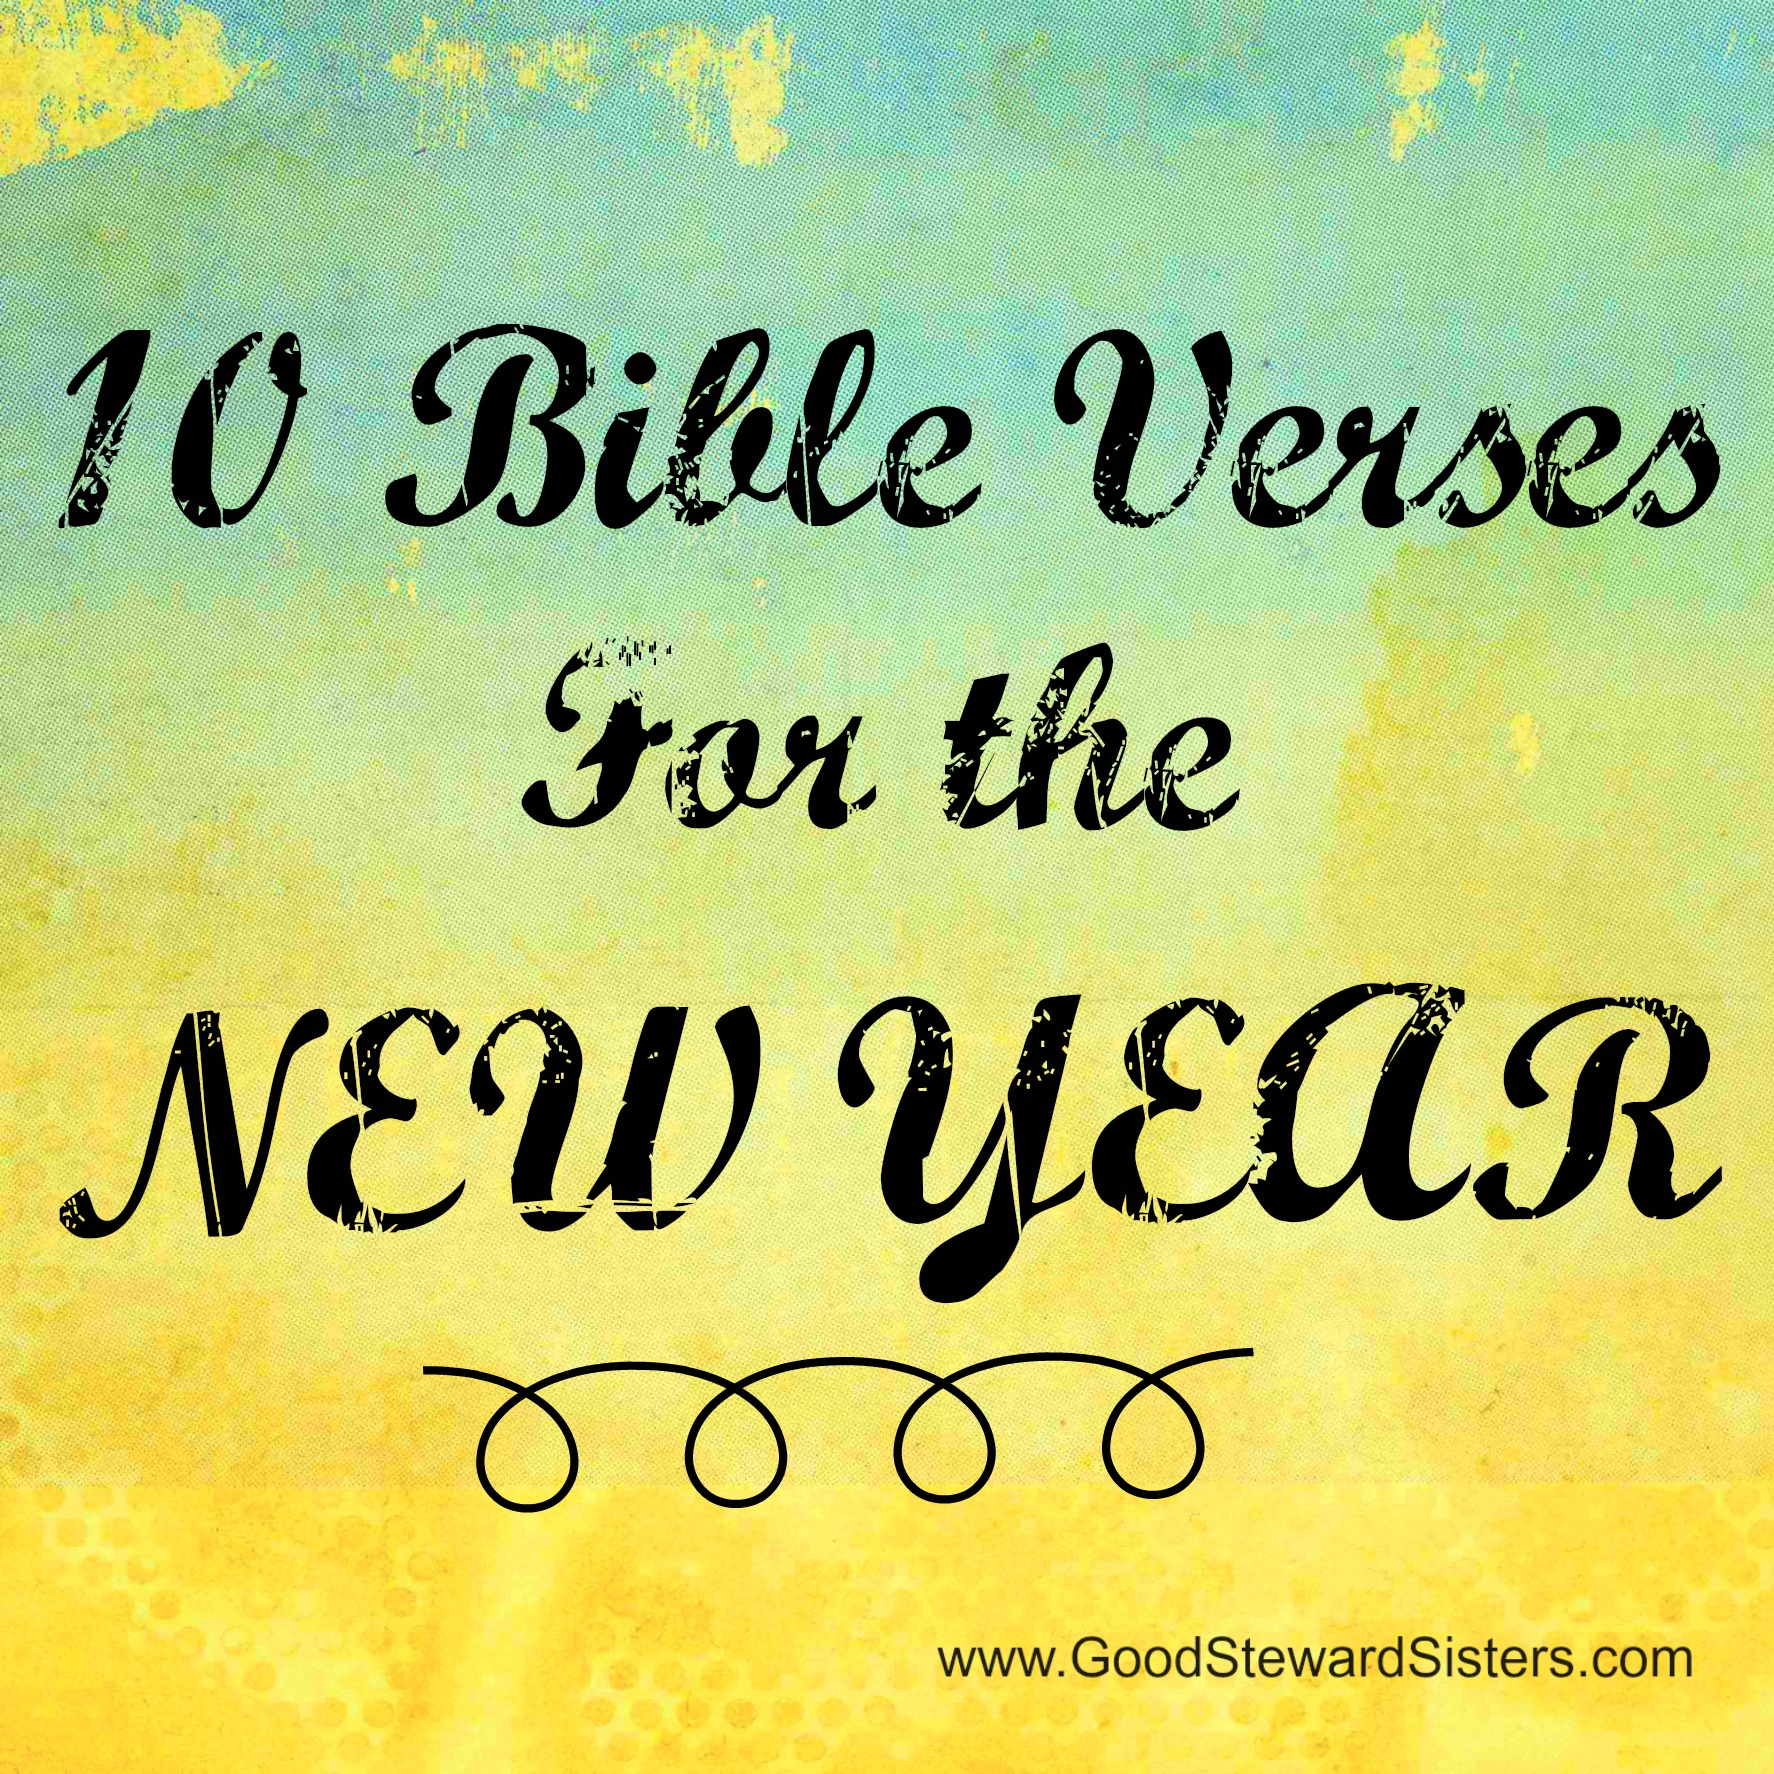 Wishes for the New Year 2017 verses 91